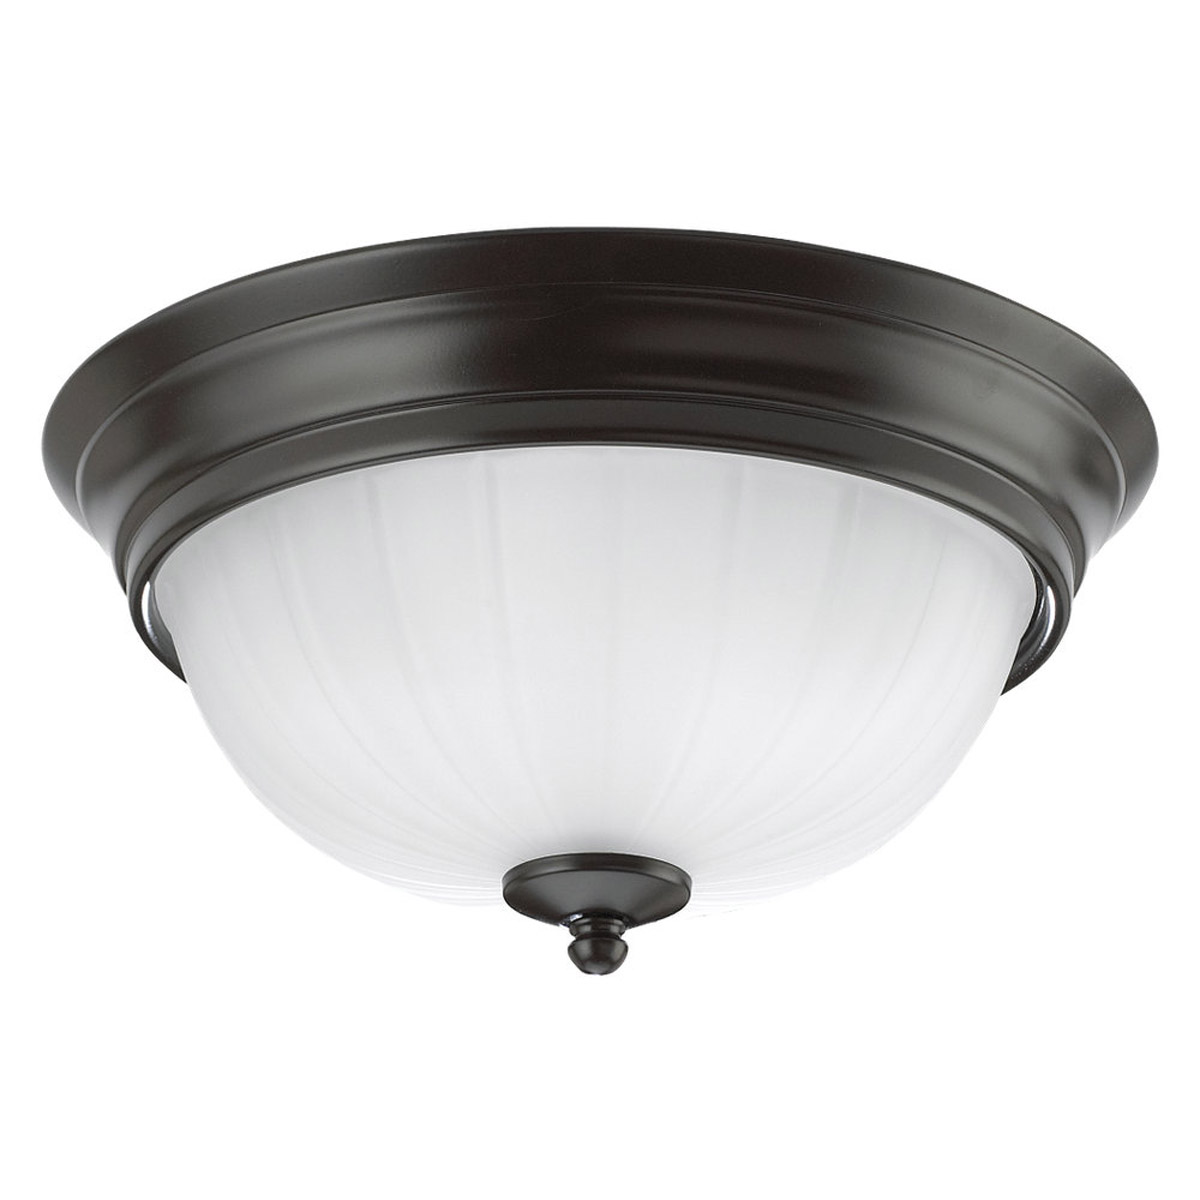 Sea Gull Lighting Linwood 2 Light Flush Mount in Heirloom Bronze 7505-782